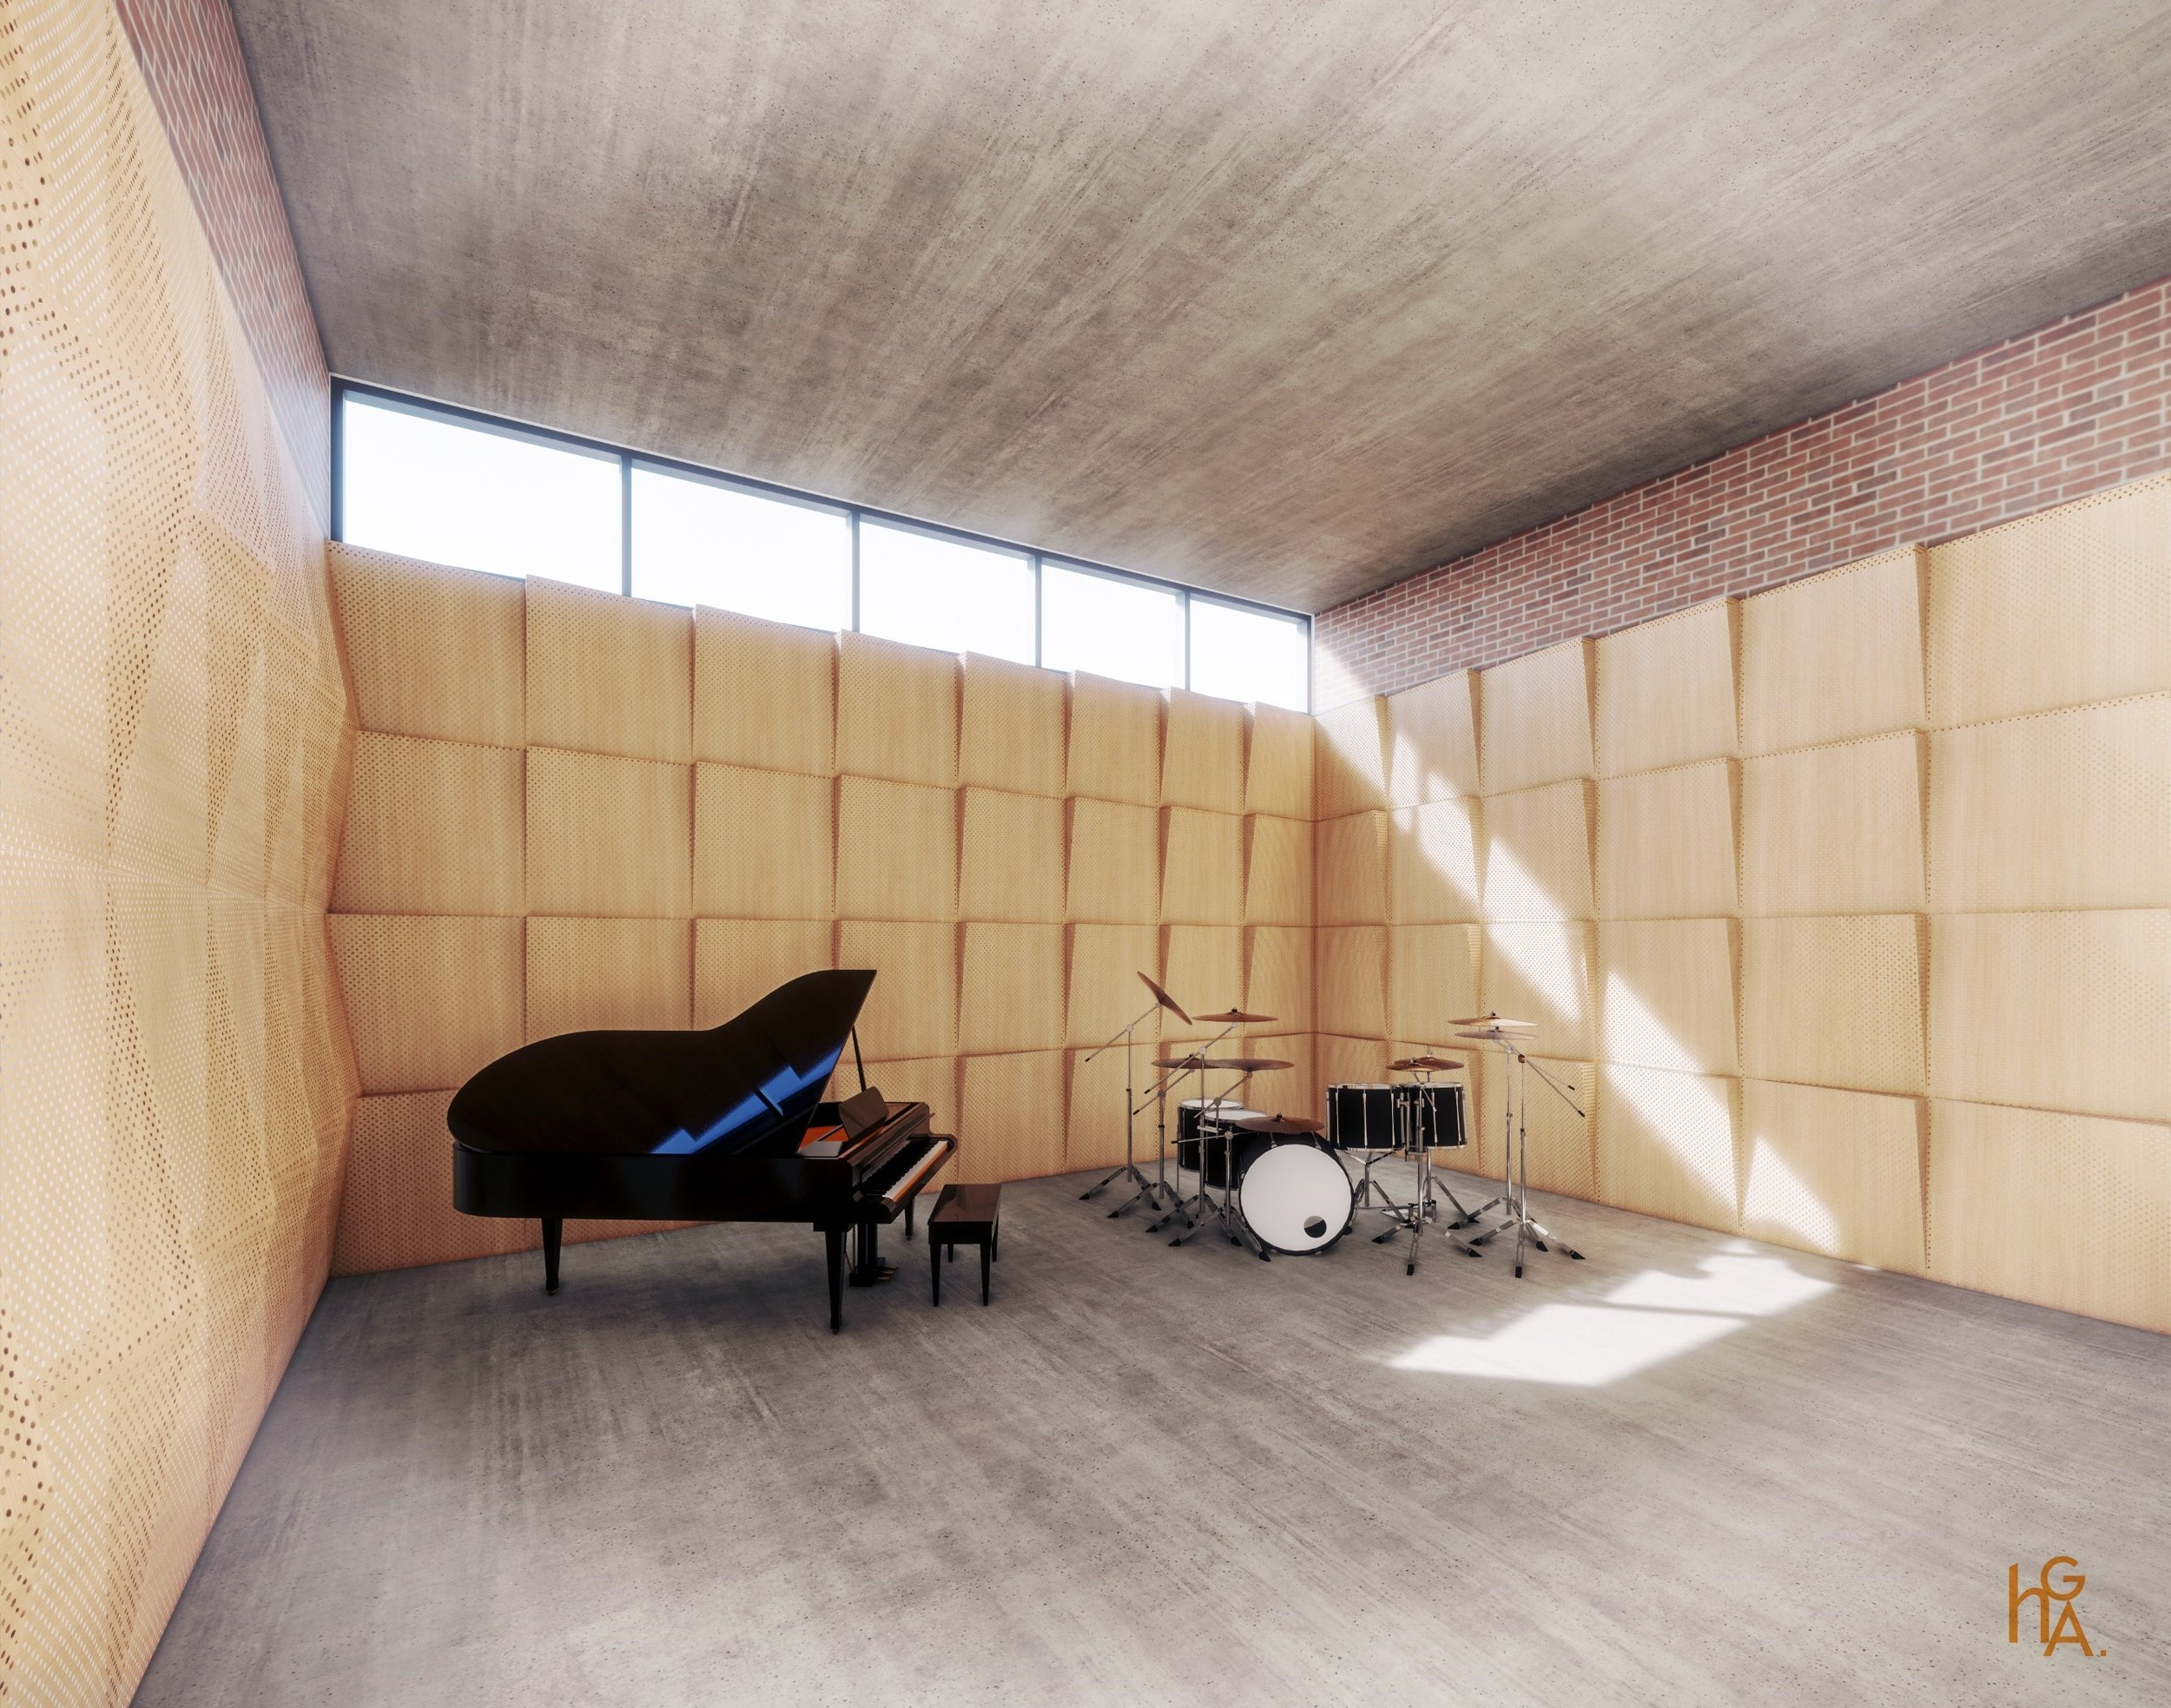 Fourth Wall Rehearsal Room Rendering—by HGA (Hammel, Green and Abrahamson)